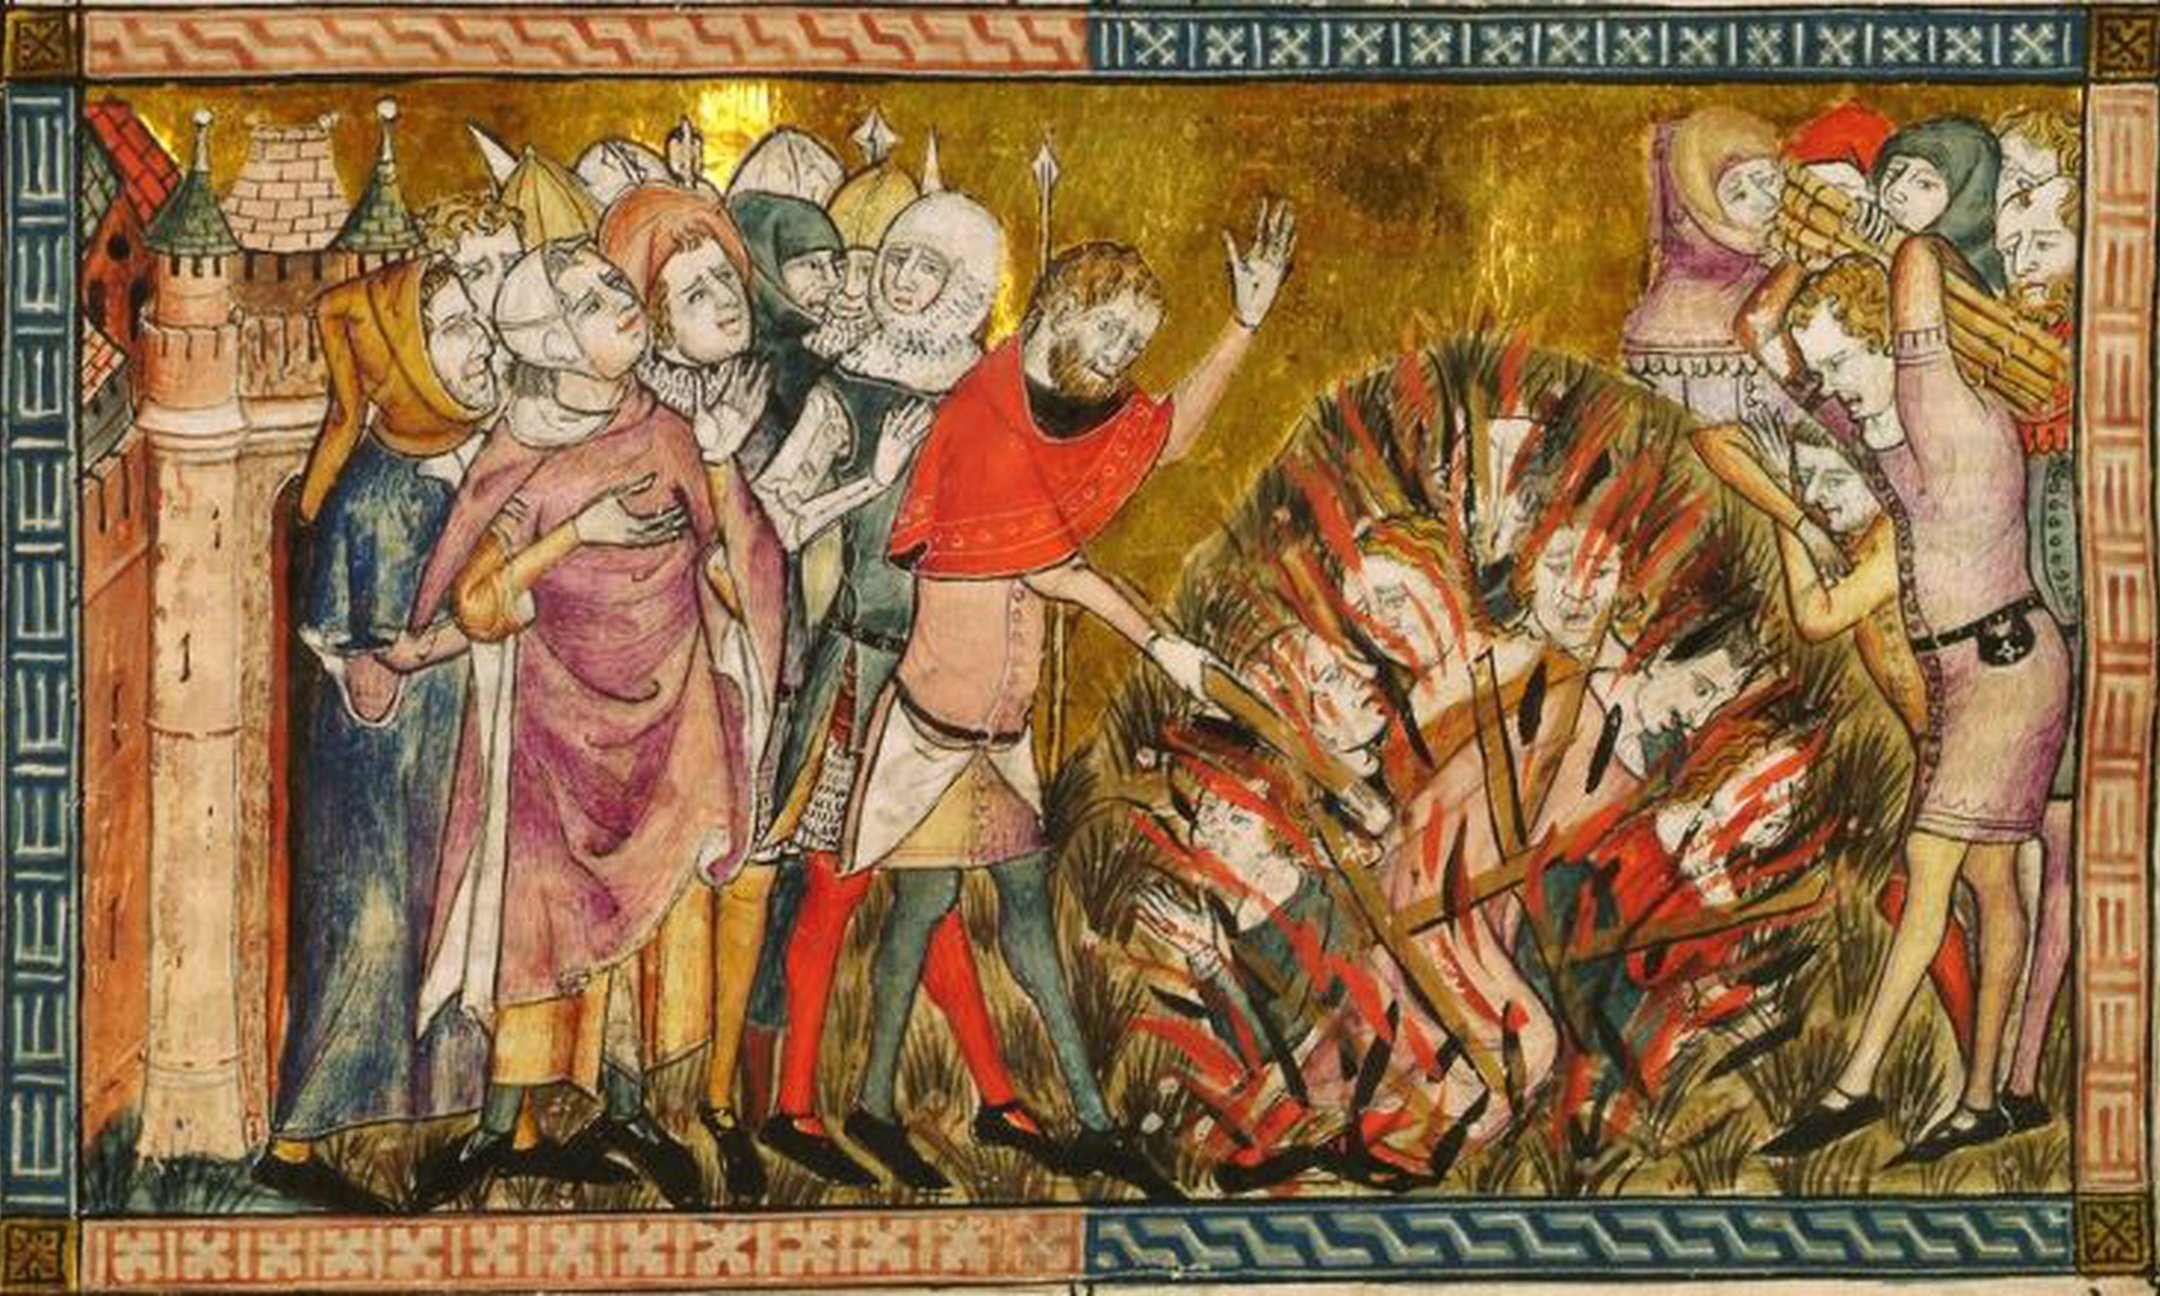 Picture of a burning of Jews (around 1353). Jews are blamed for the plague epidemic in Europe and accused of poisoning the wells.